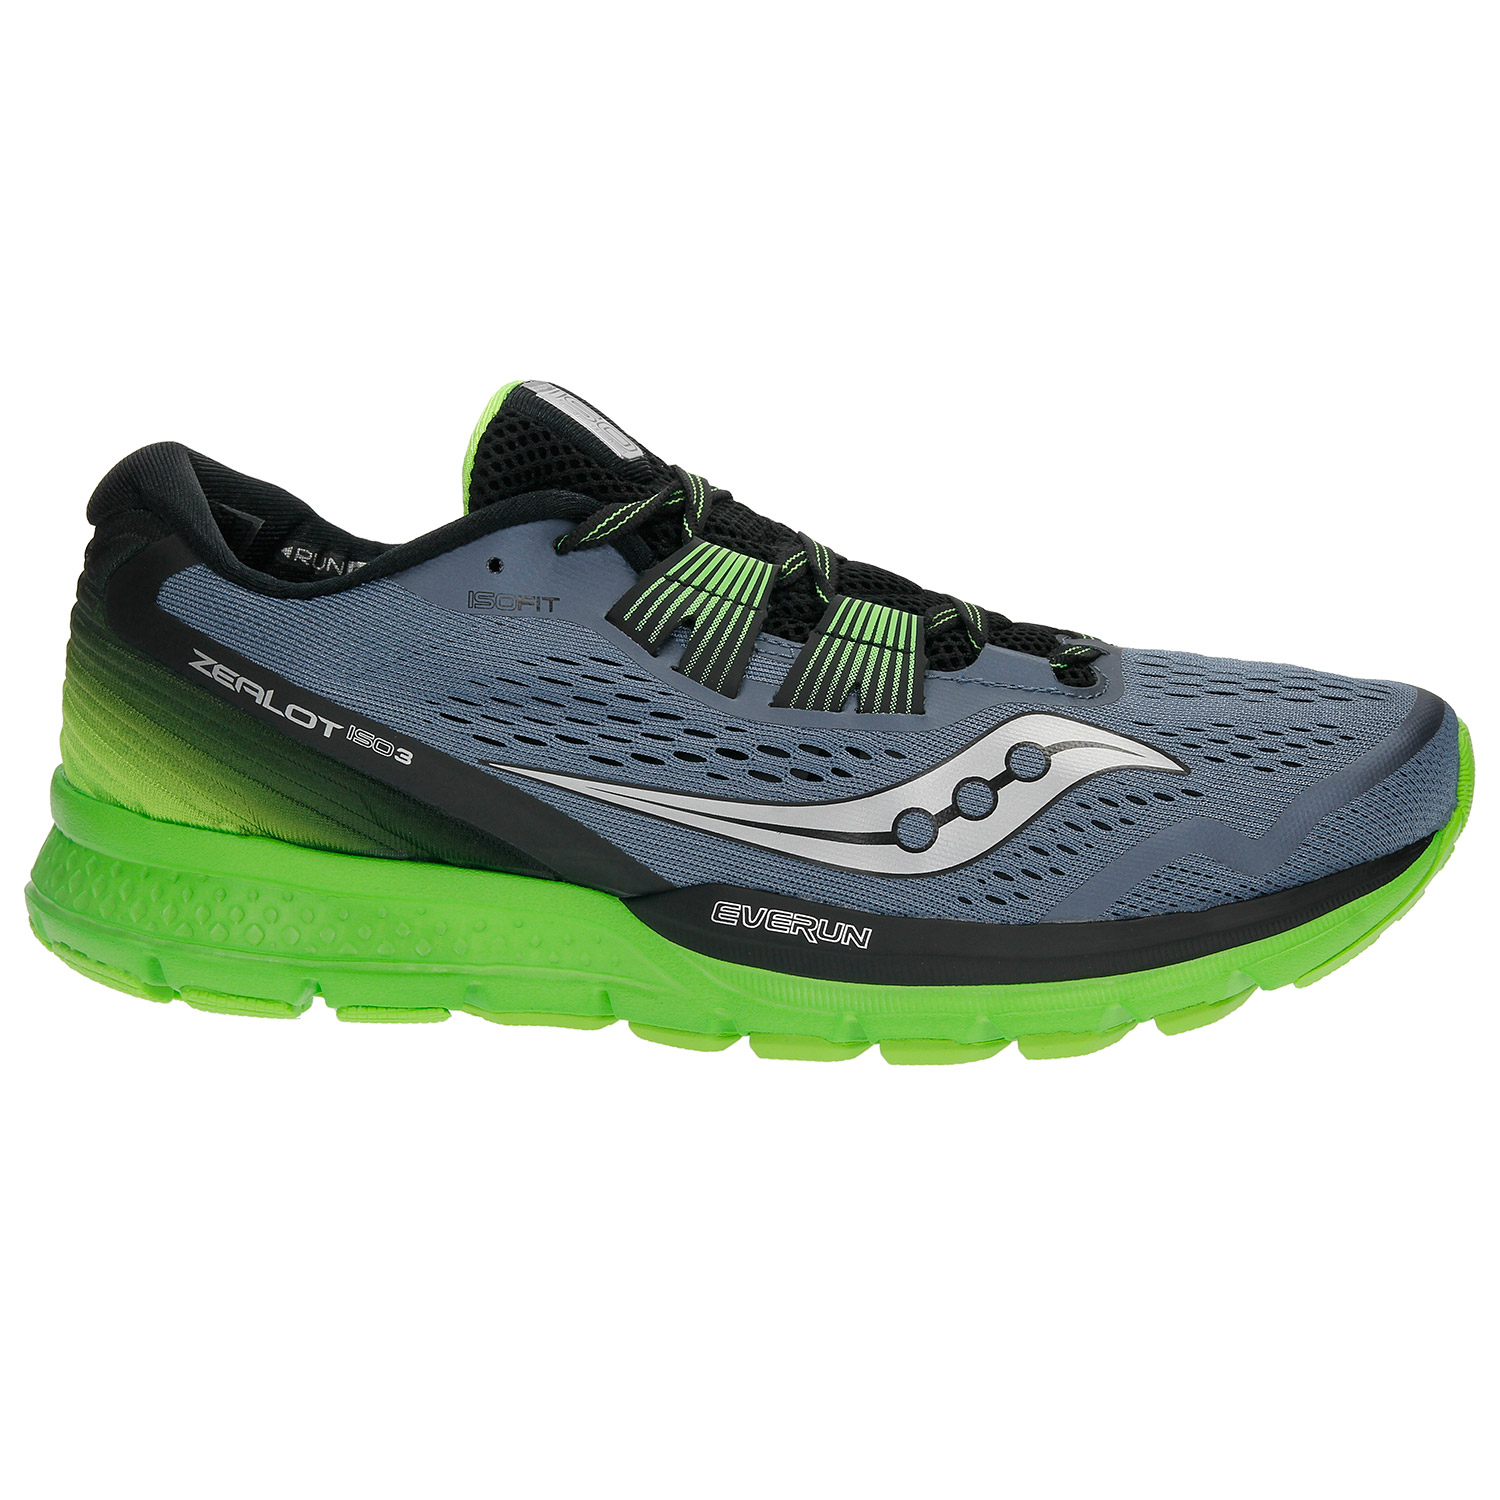 10 Best Running Shoes for Supination for 2018